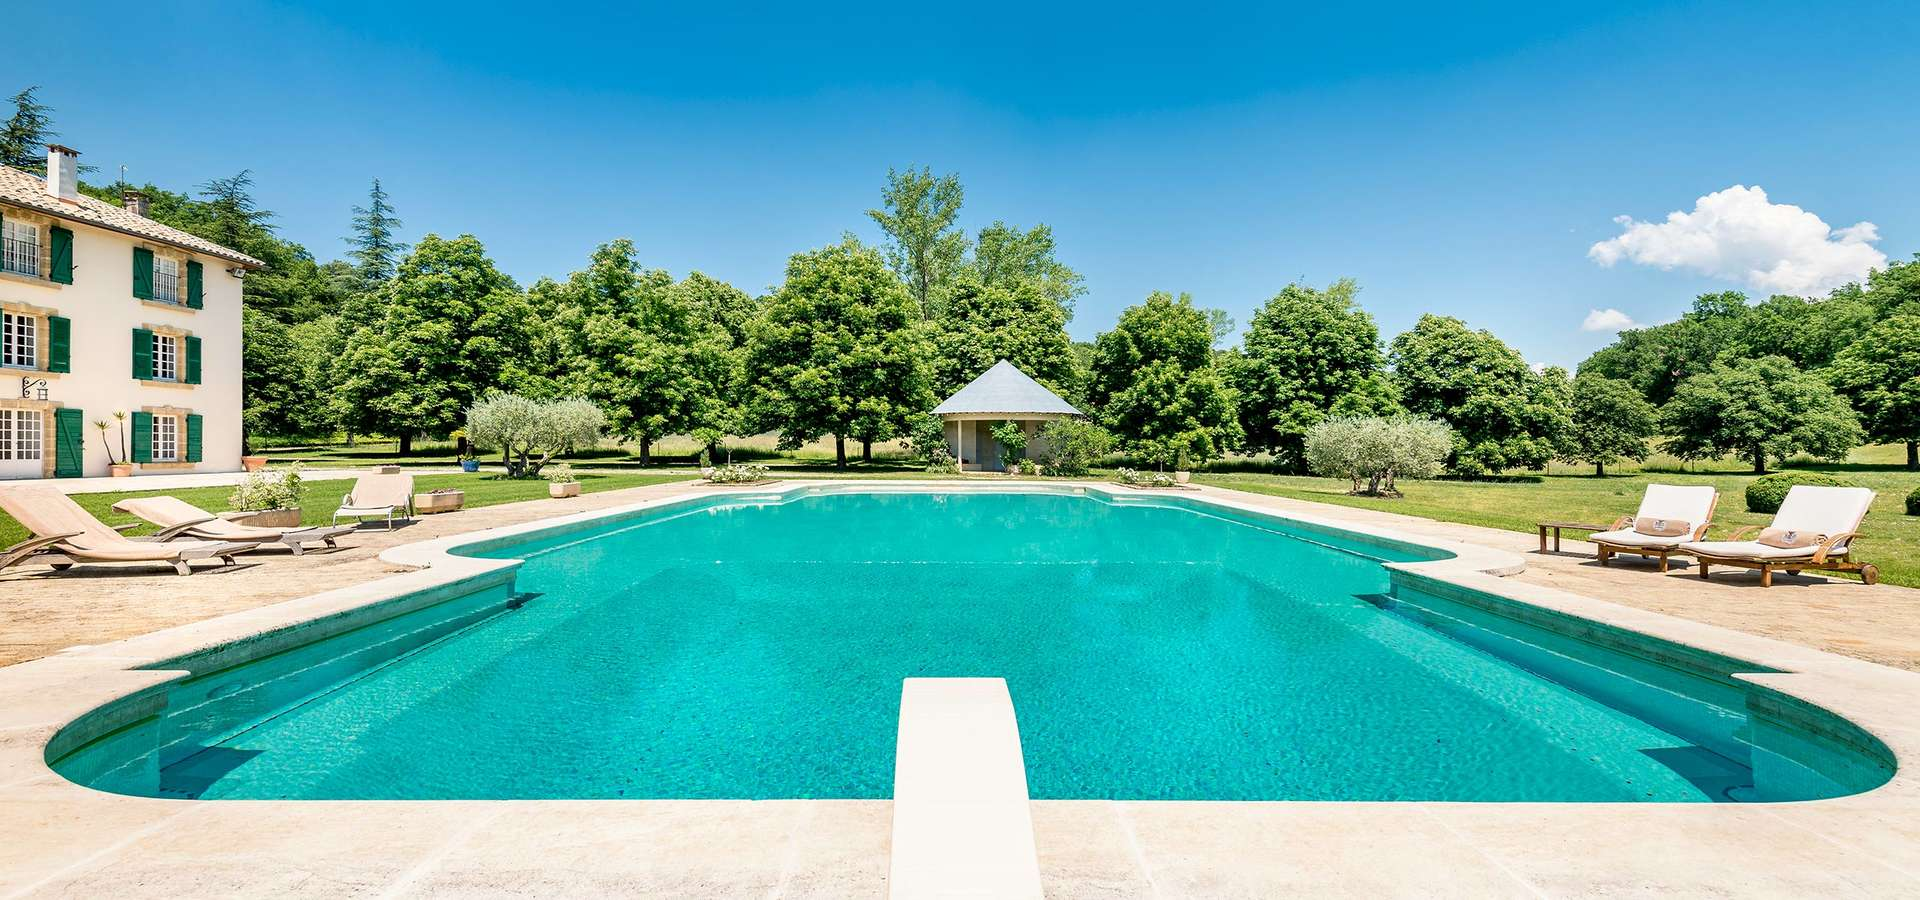 Luxury vacation rentals europe - France - Provence ih - Provence luberon - Domaine de Riez - Image 1/22